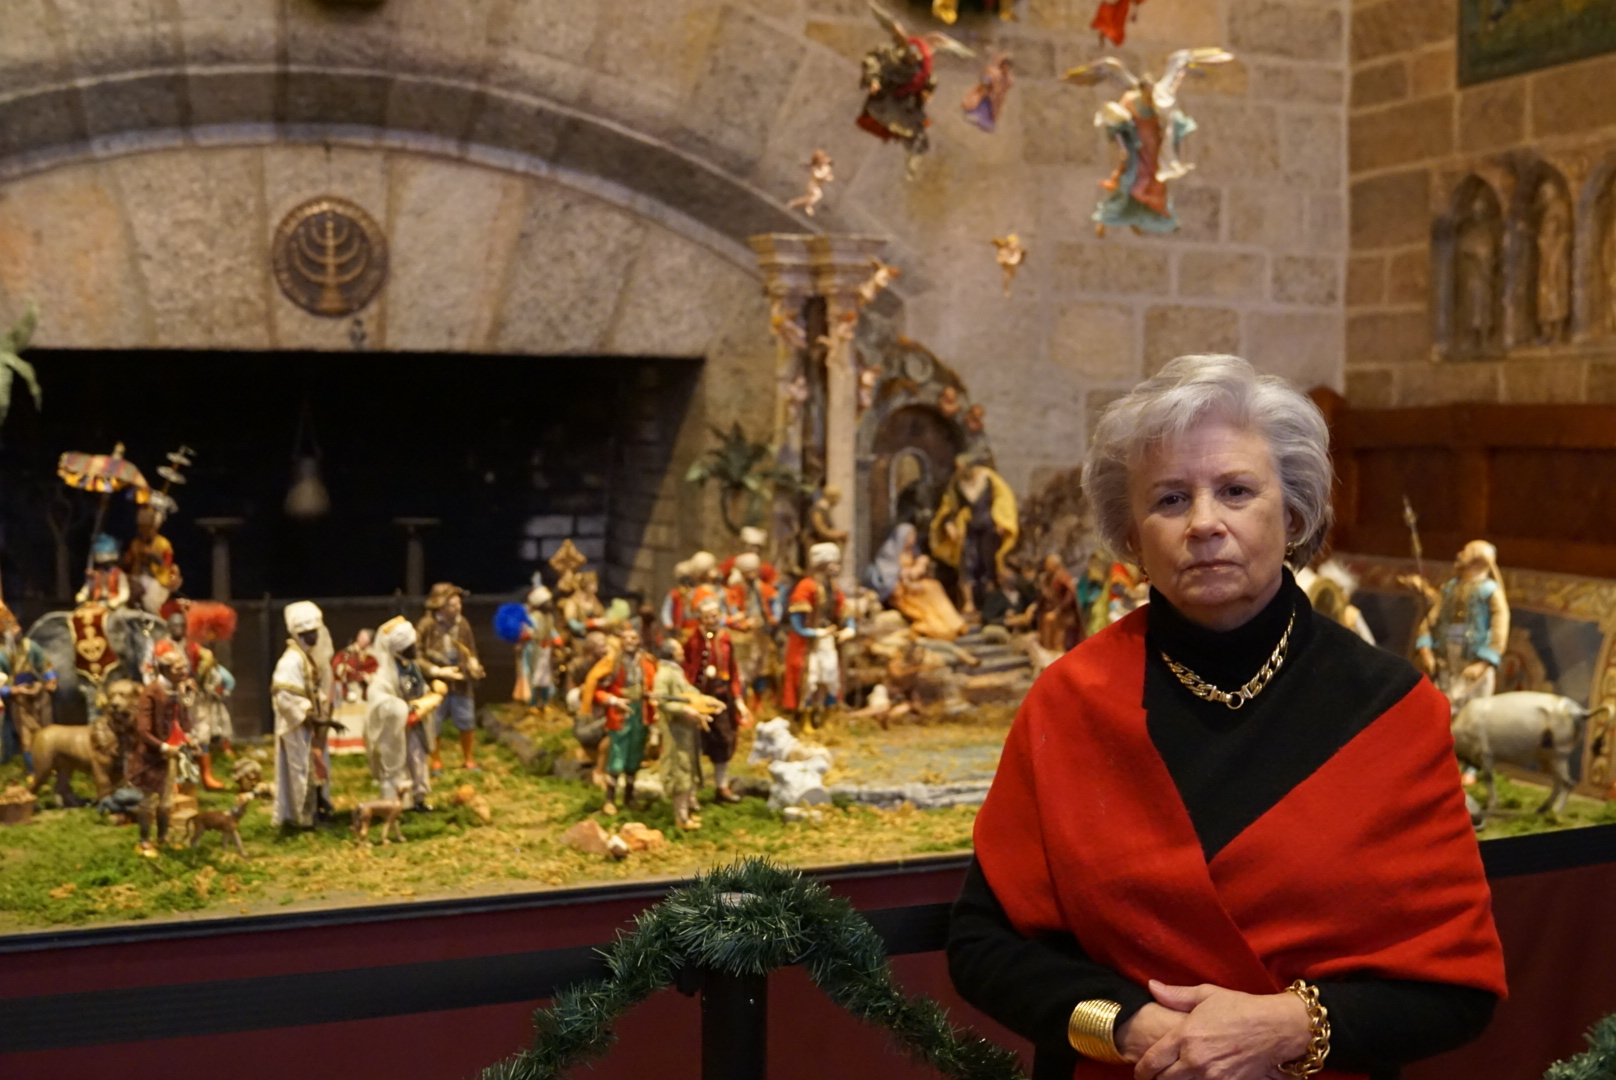 Figure 6: Marcia Evans at the opening of Glencairn's  World Nativities  exhibition. Marcia and her sister Suzanne Hoyle-Rhodes donated the Presepio to the Fleisher Art Memorial in memory of their sister Elizabeth Anne Evans. Elizabeth collected the figures and structures over a period of more than thirty years during her annual trips to Naples, Italy.